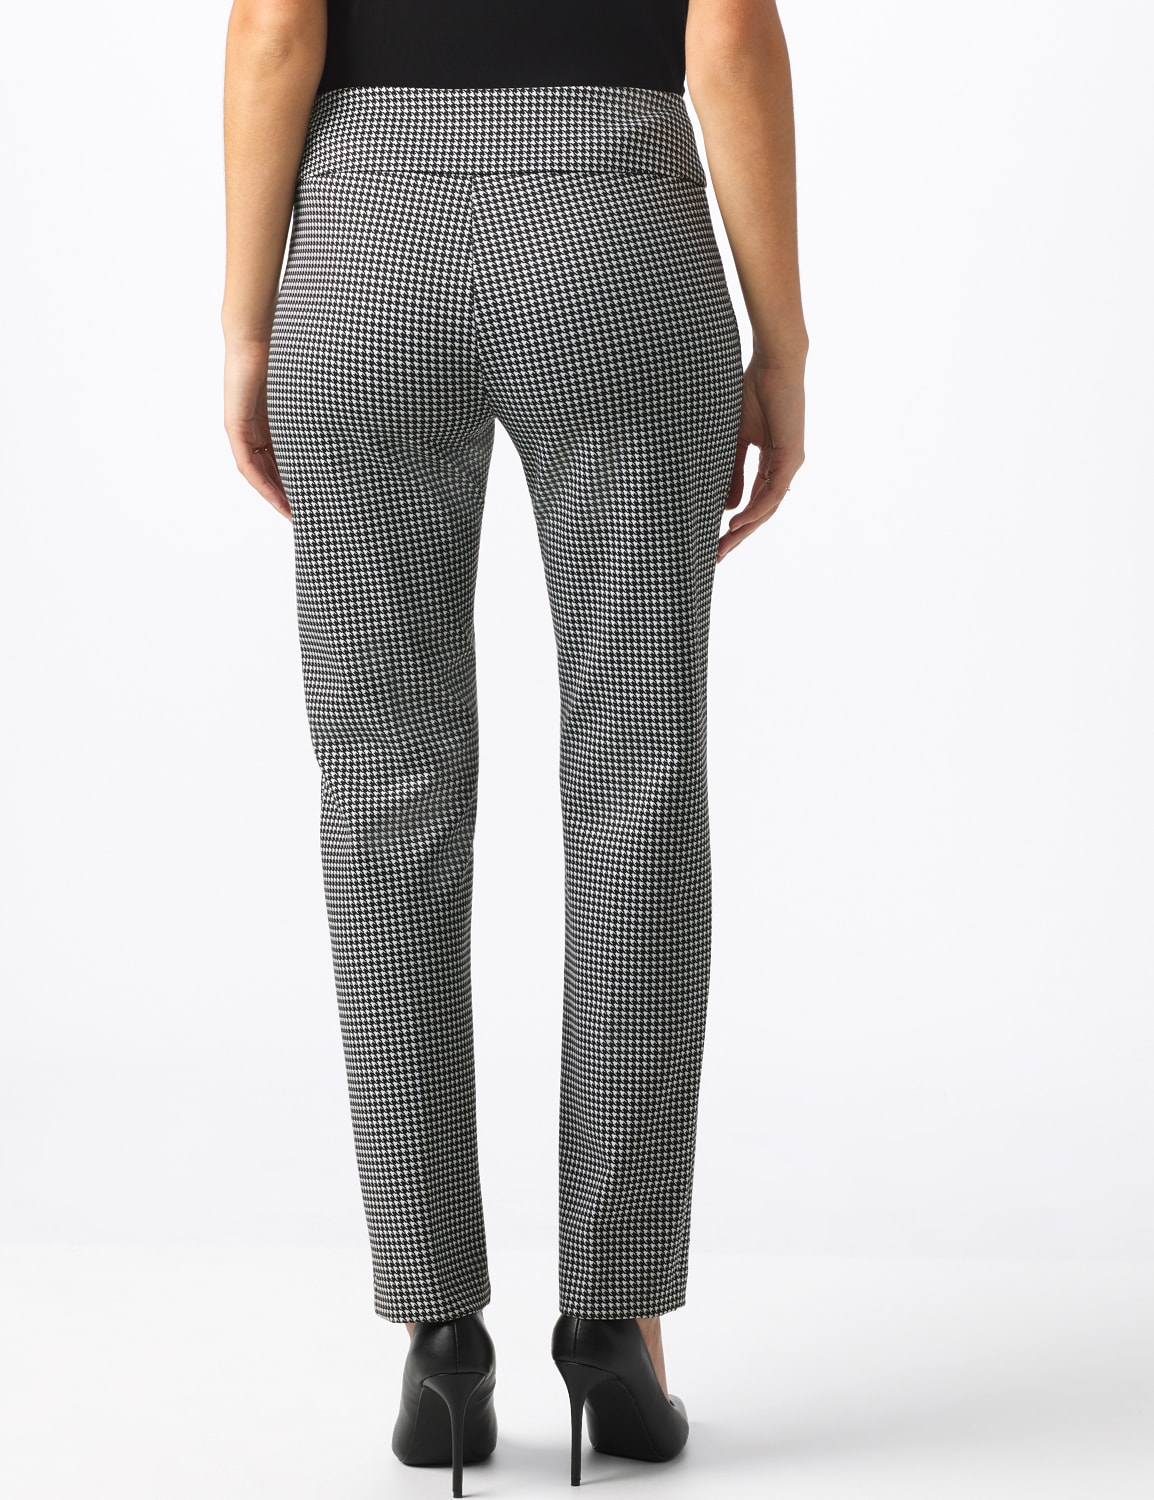 Pull On Houndstooth Print Compression Pant - Black/Sugar swizzle - Back